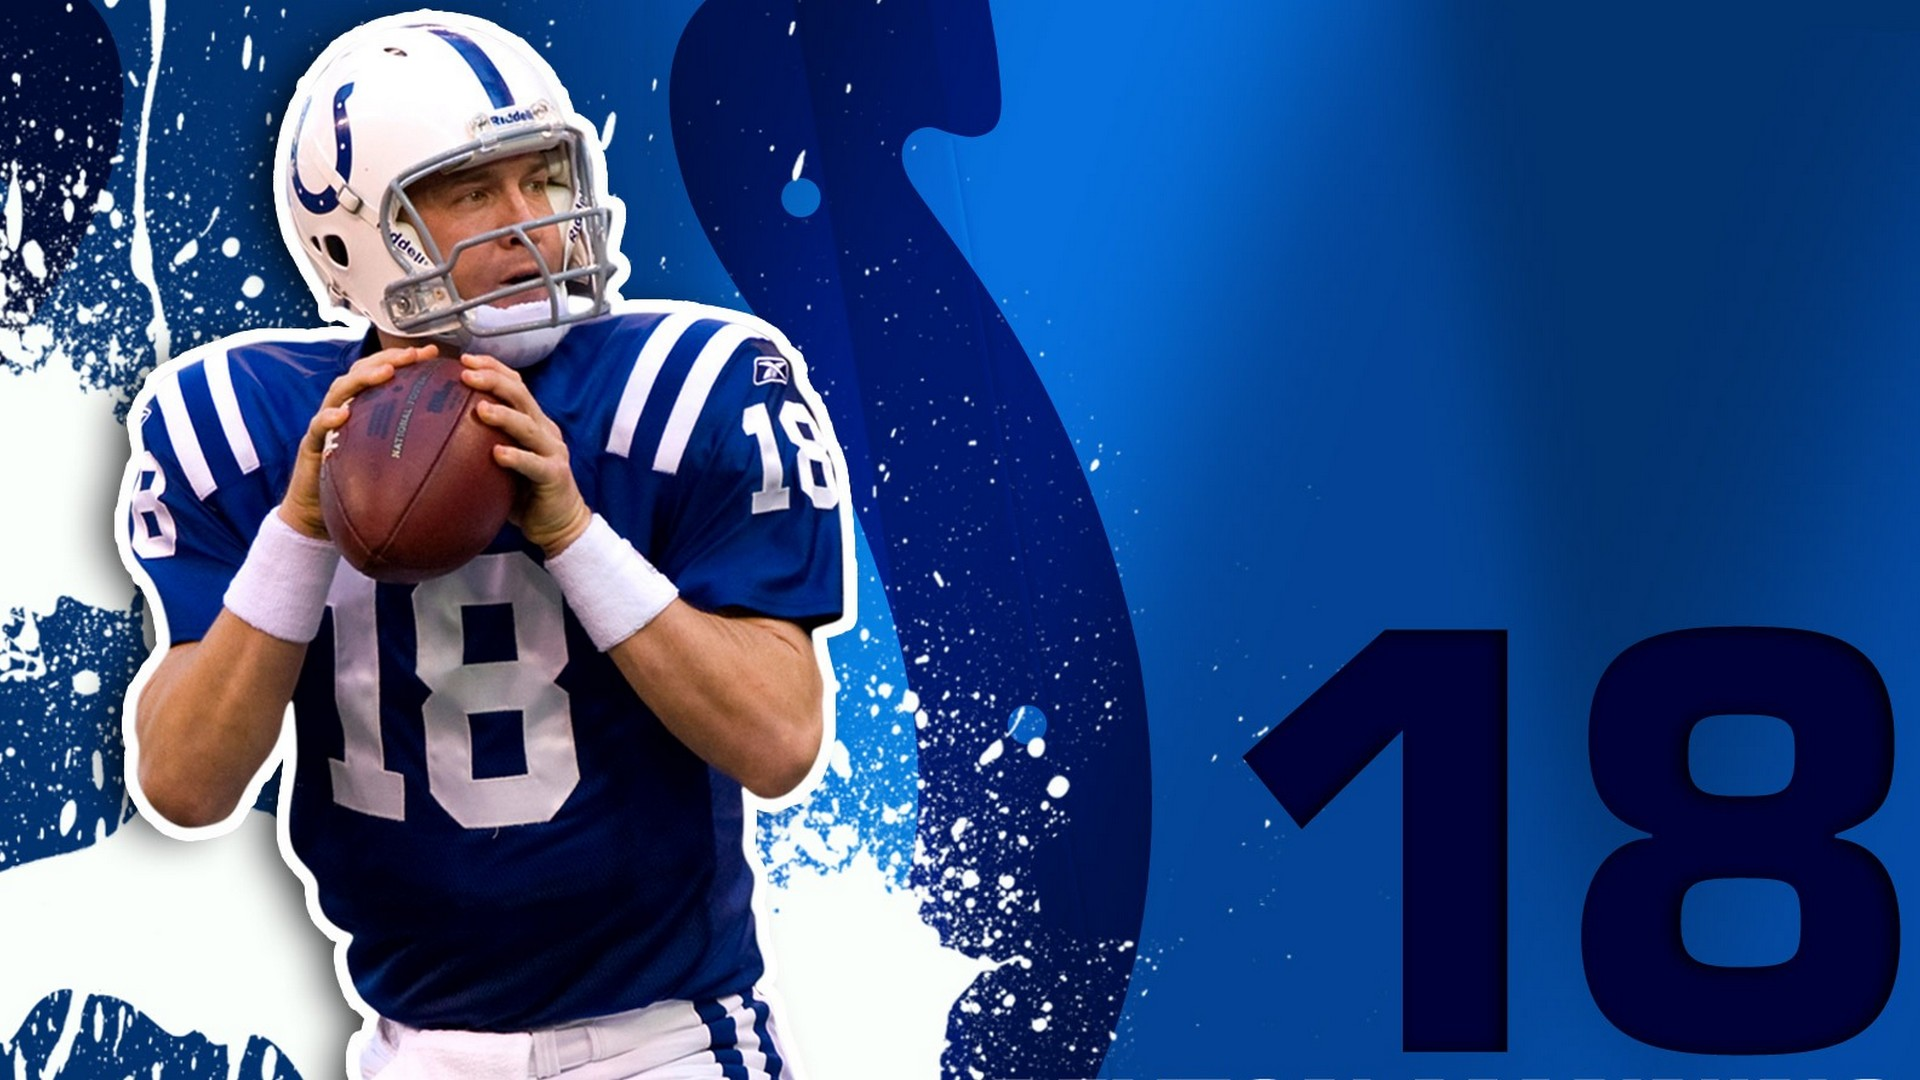 Peyton Manning Indianapolis Colts Wallpaper 2019 NFL Football 1920x1080